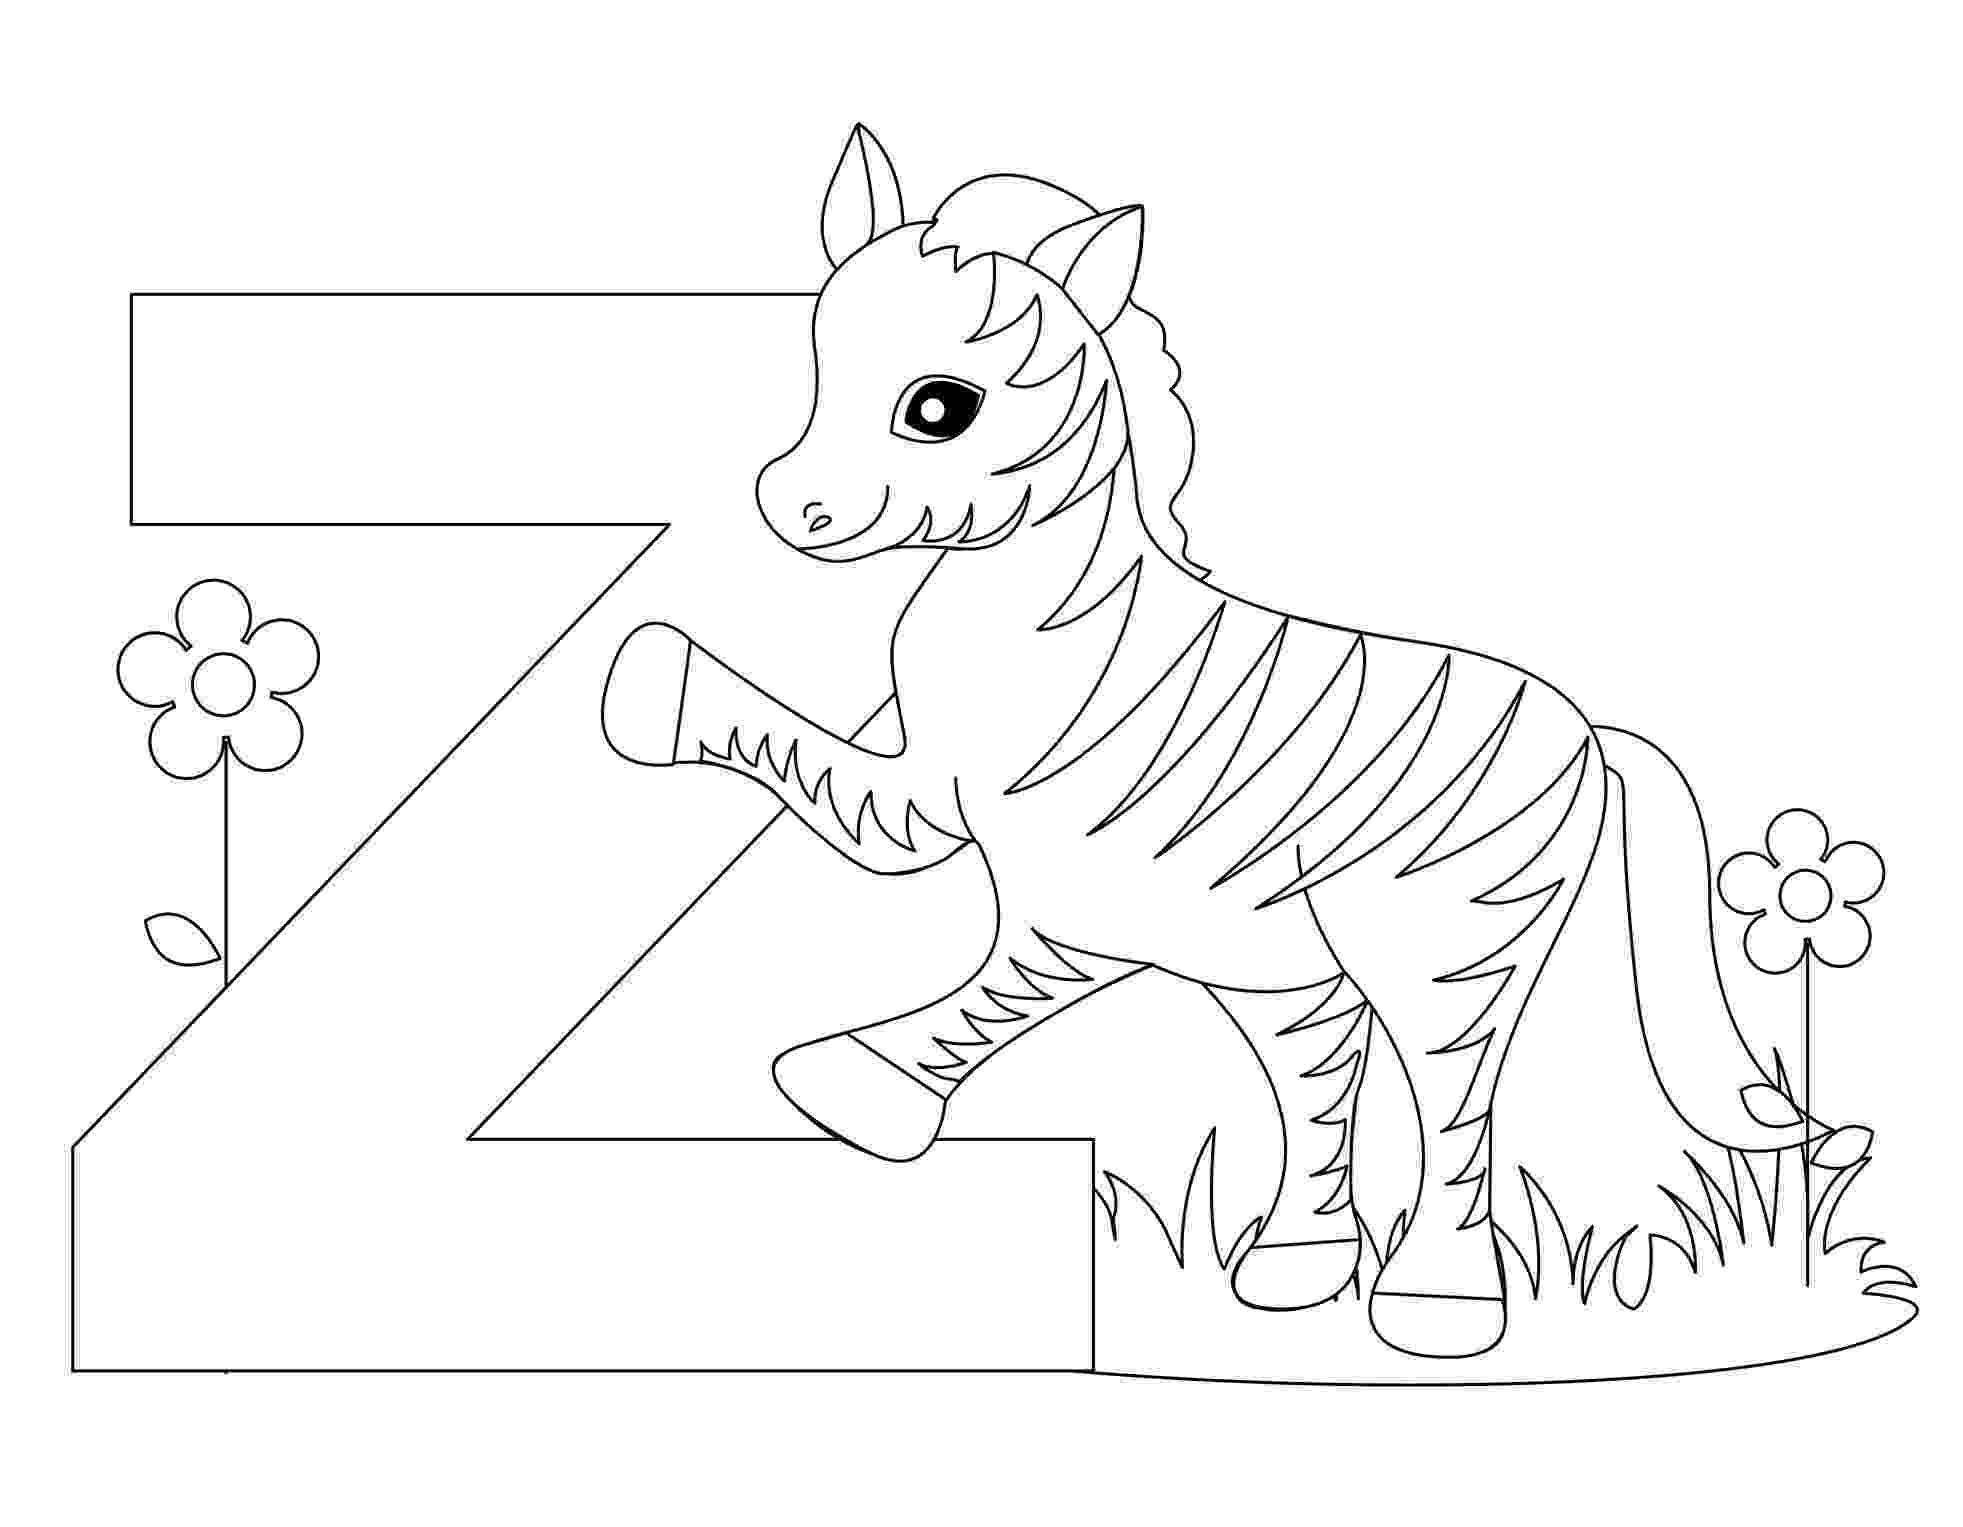 alphabet coloring free printable alphabet coloring pages for kids best coloring alphabet 1 7